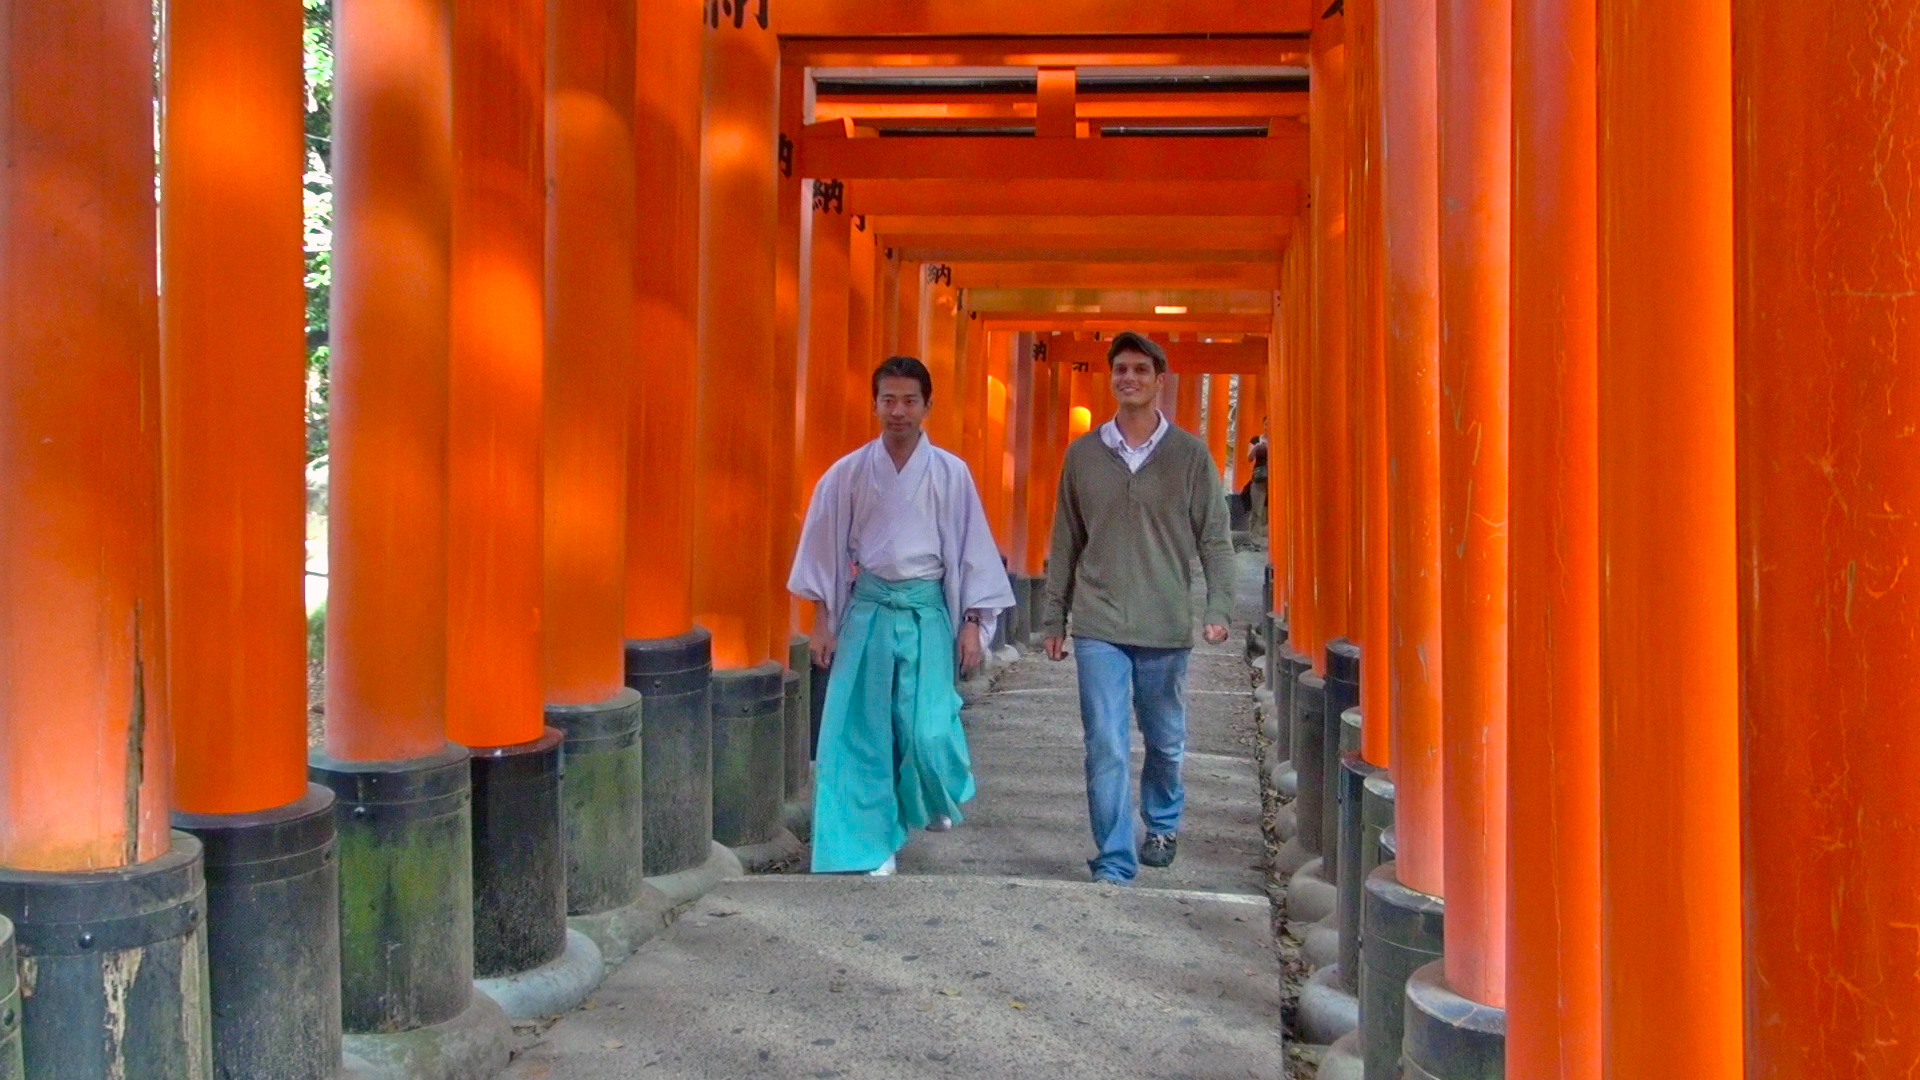 Fushimi Inari Shrine: What Makes it Japan's No. 1 Attraction